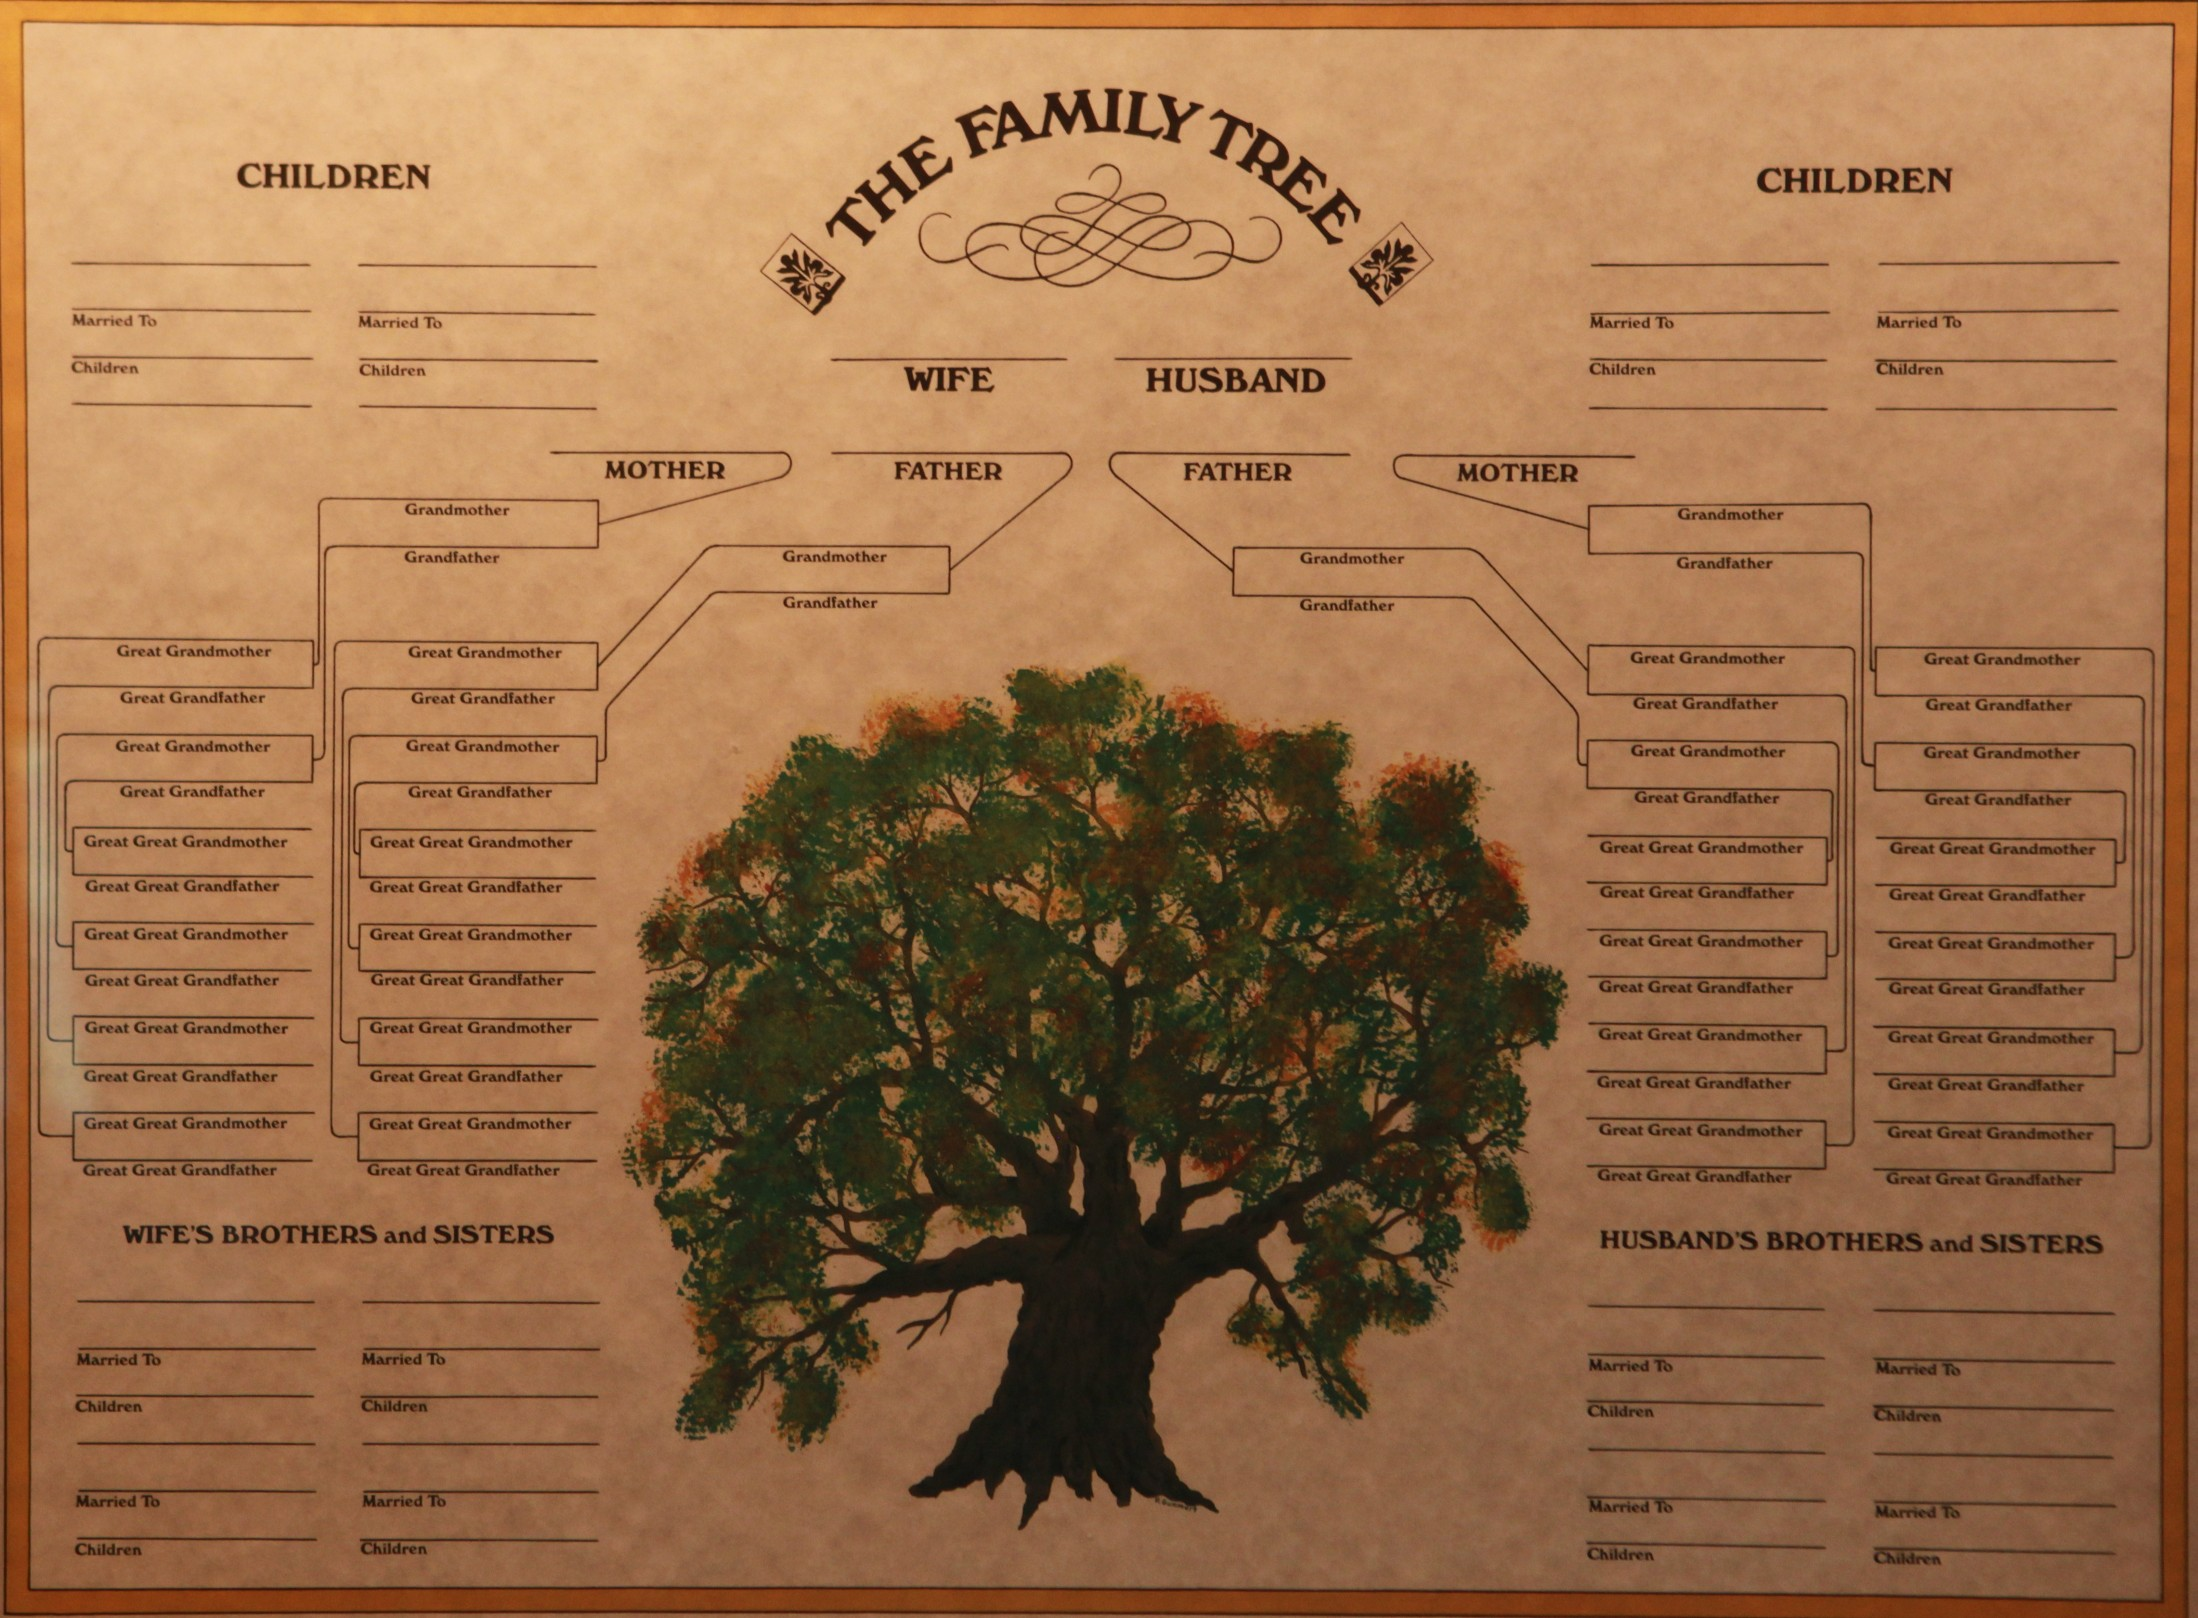 Family tree poster board